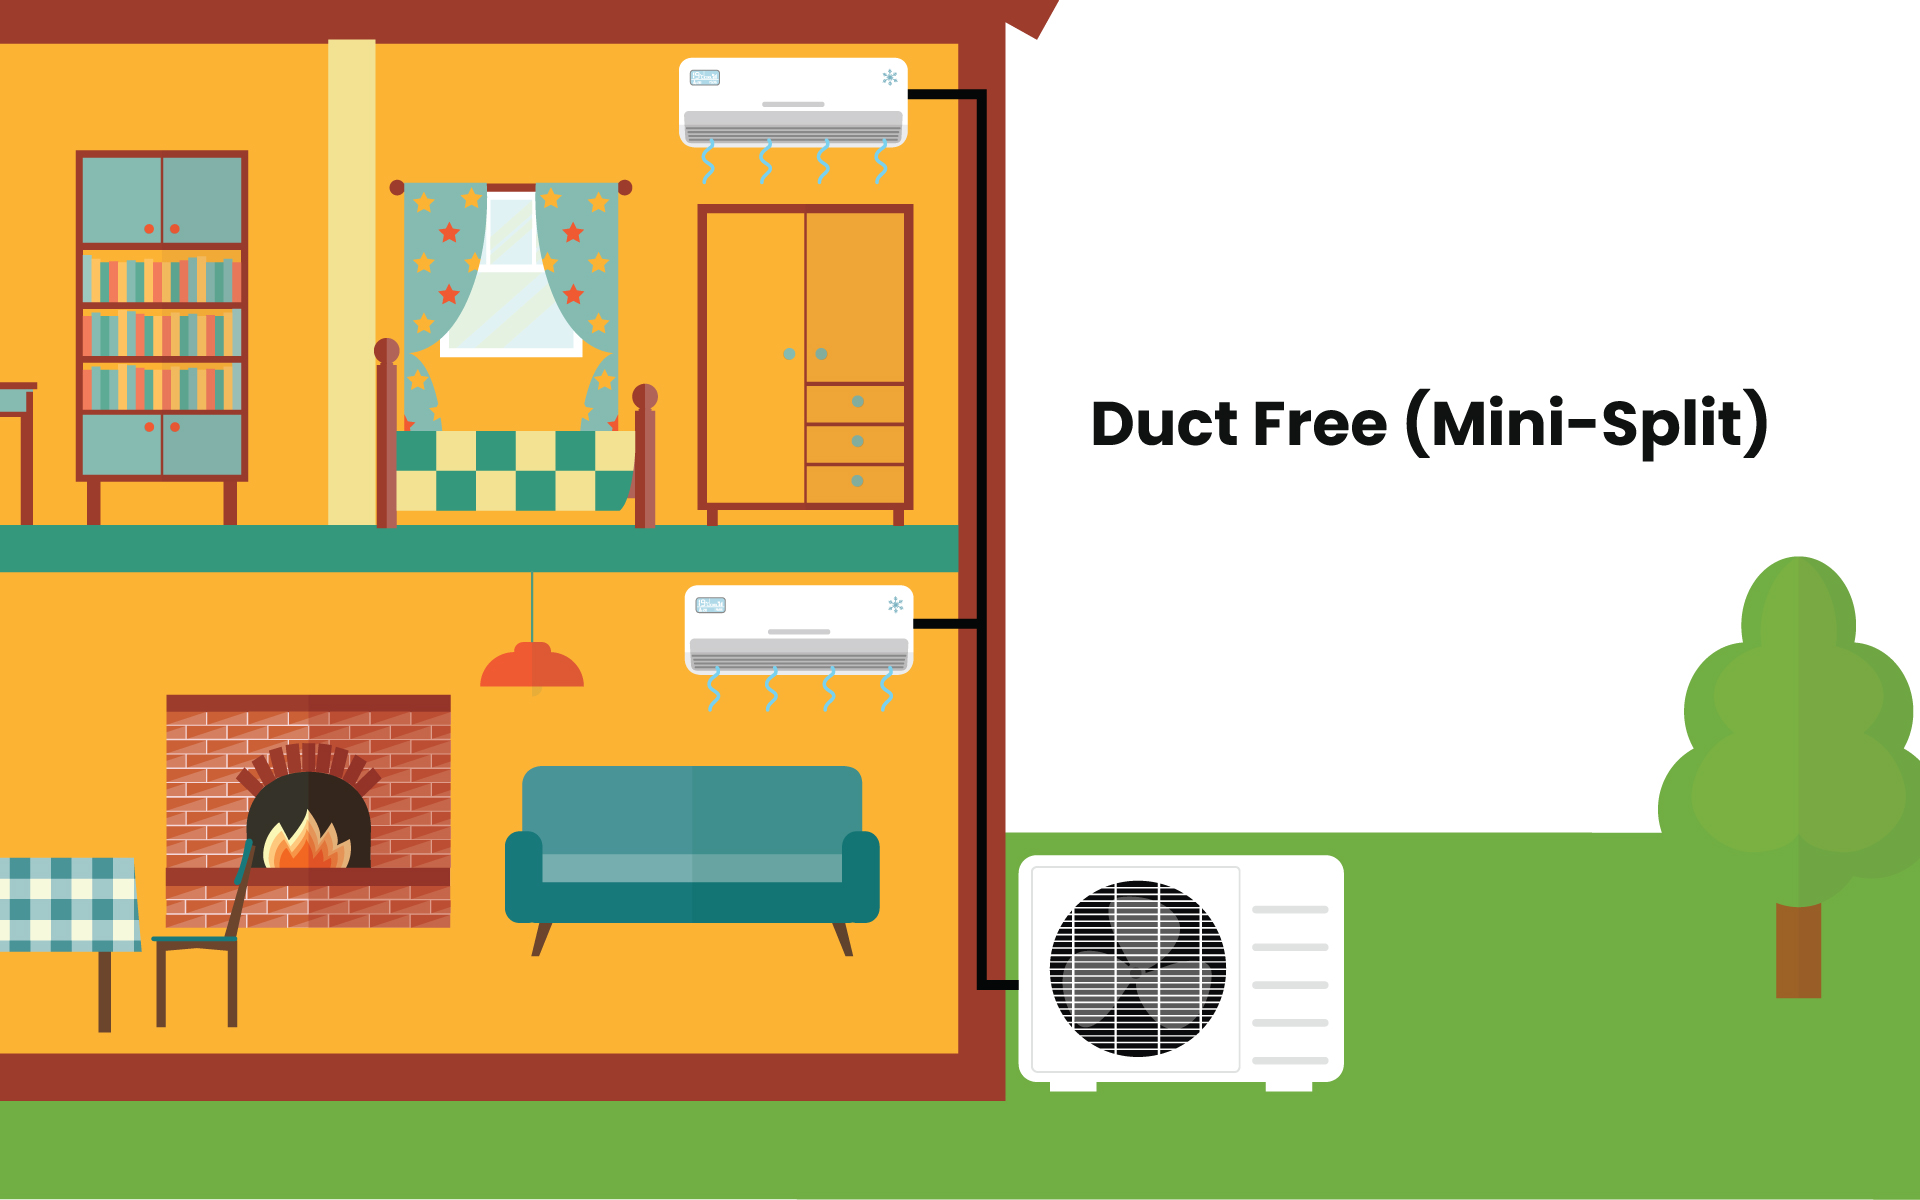 Duct free systems are in each individual room.